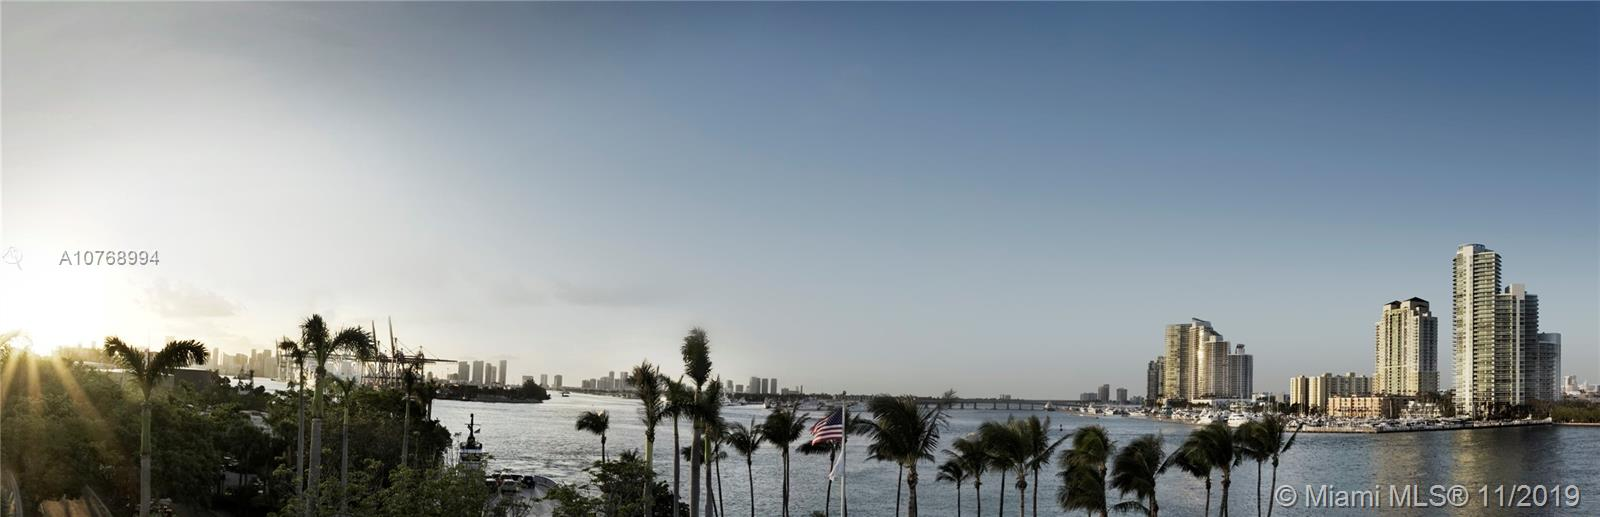 6822 Fisher Island Drive, Unit #6822 Luxury Real Estate